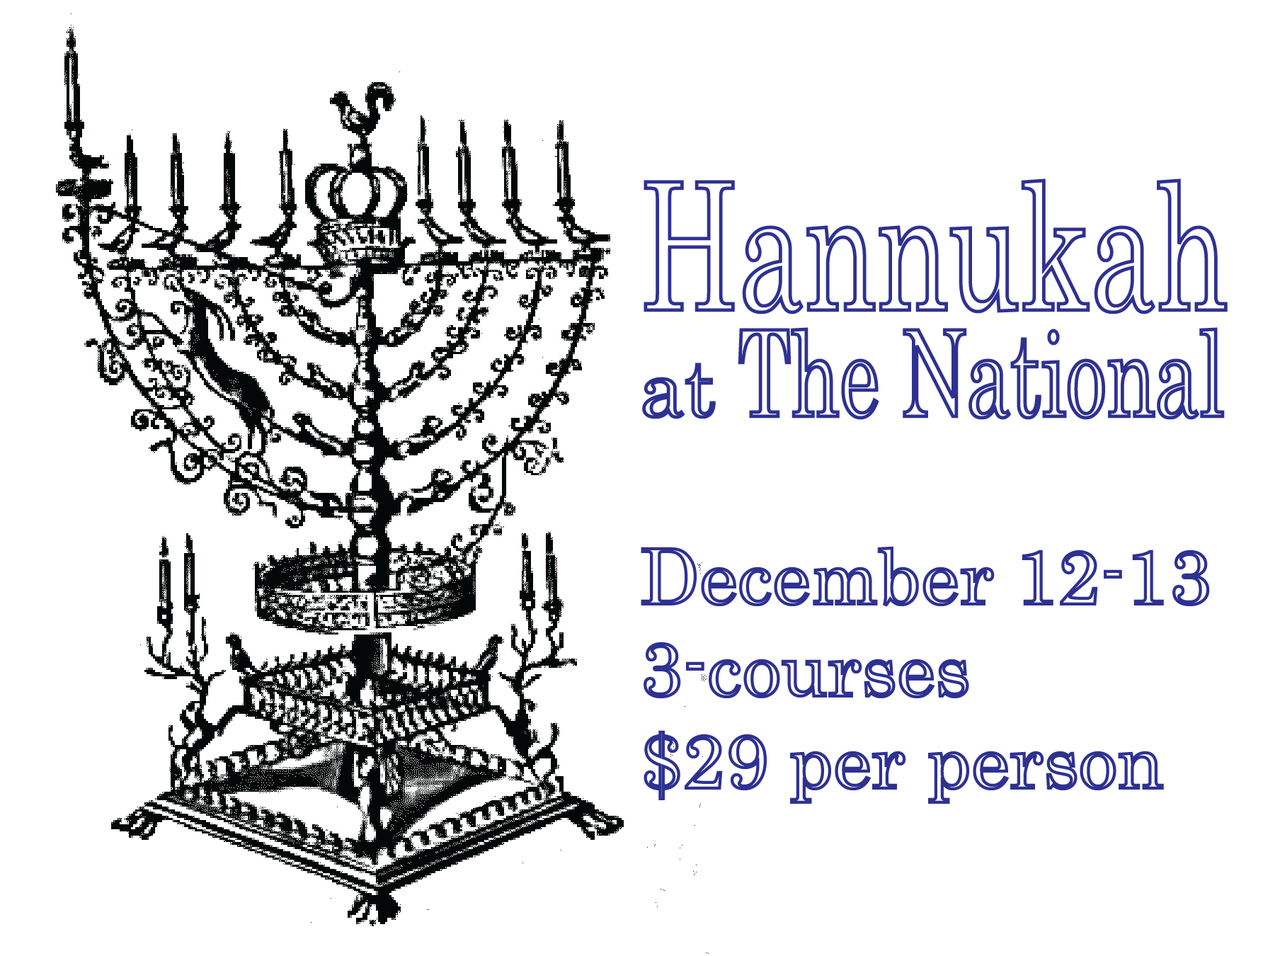 Hanukkah at The National  December 11-13, 2012  3-courses  $29 per person      for reservations, call 706-549-3450 or email thenationalrestaurant@gmail.com      1.  latkes   house apple sauce, creme fraiche, chives and chive oil  or  beet soup    dill and pumpernickel croutons       2.  c.a.b. beef brisket    roasted potatoes, braised red cabbage, caramelized onion, savory tomato-sesame jam  or  olive oil poached steelhead trout    saffron rice with chickpeas and pistachios, cucumber-pomegranate salad, salsa verde      3.  fried doughnuts    local honey, pecans, pomegranate, cinnamon  or  raspberry rugelach stick    cocoa sauce and apricot gelt     *vegetarian/vegan options available